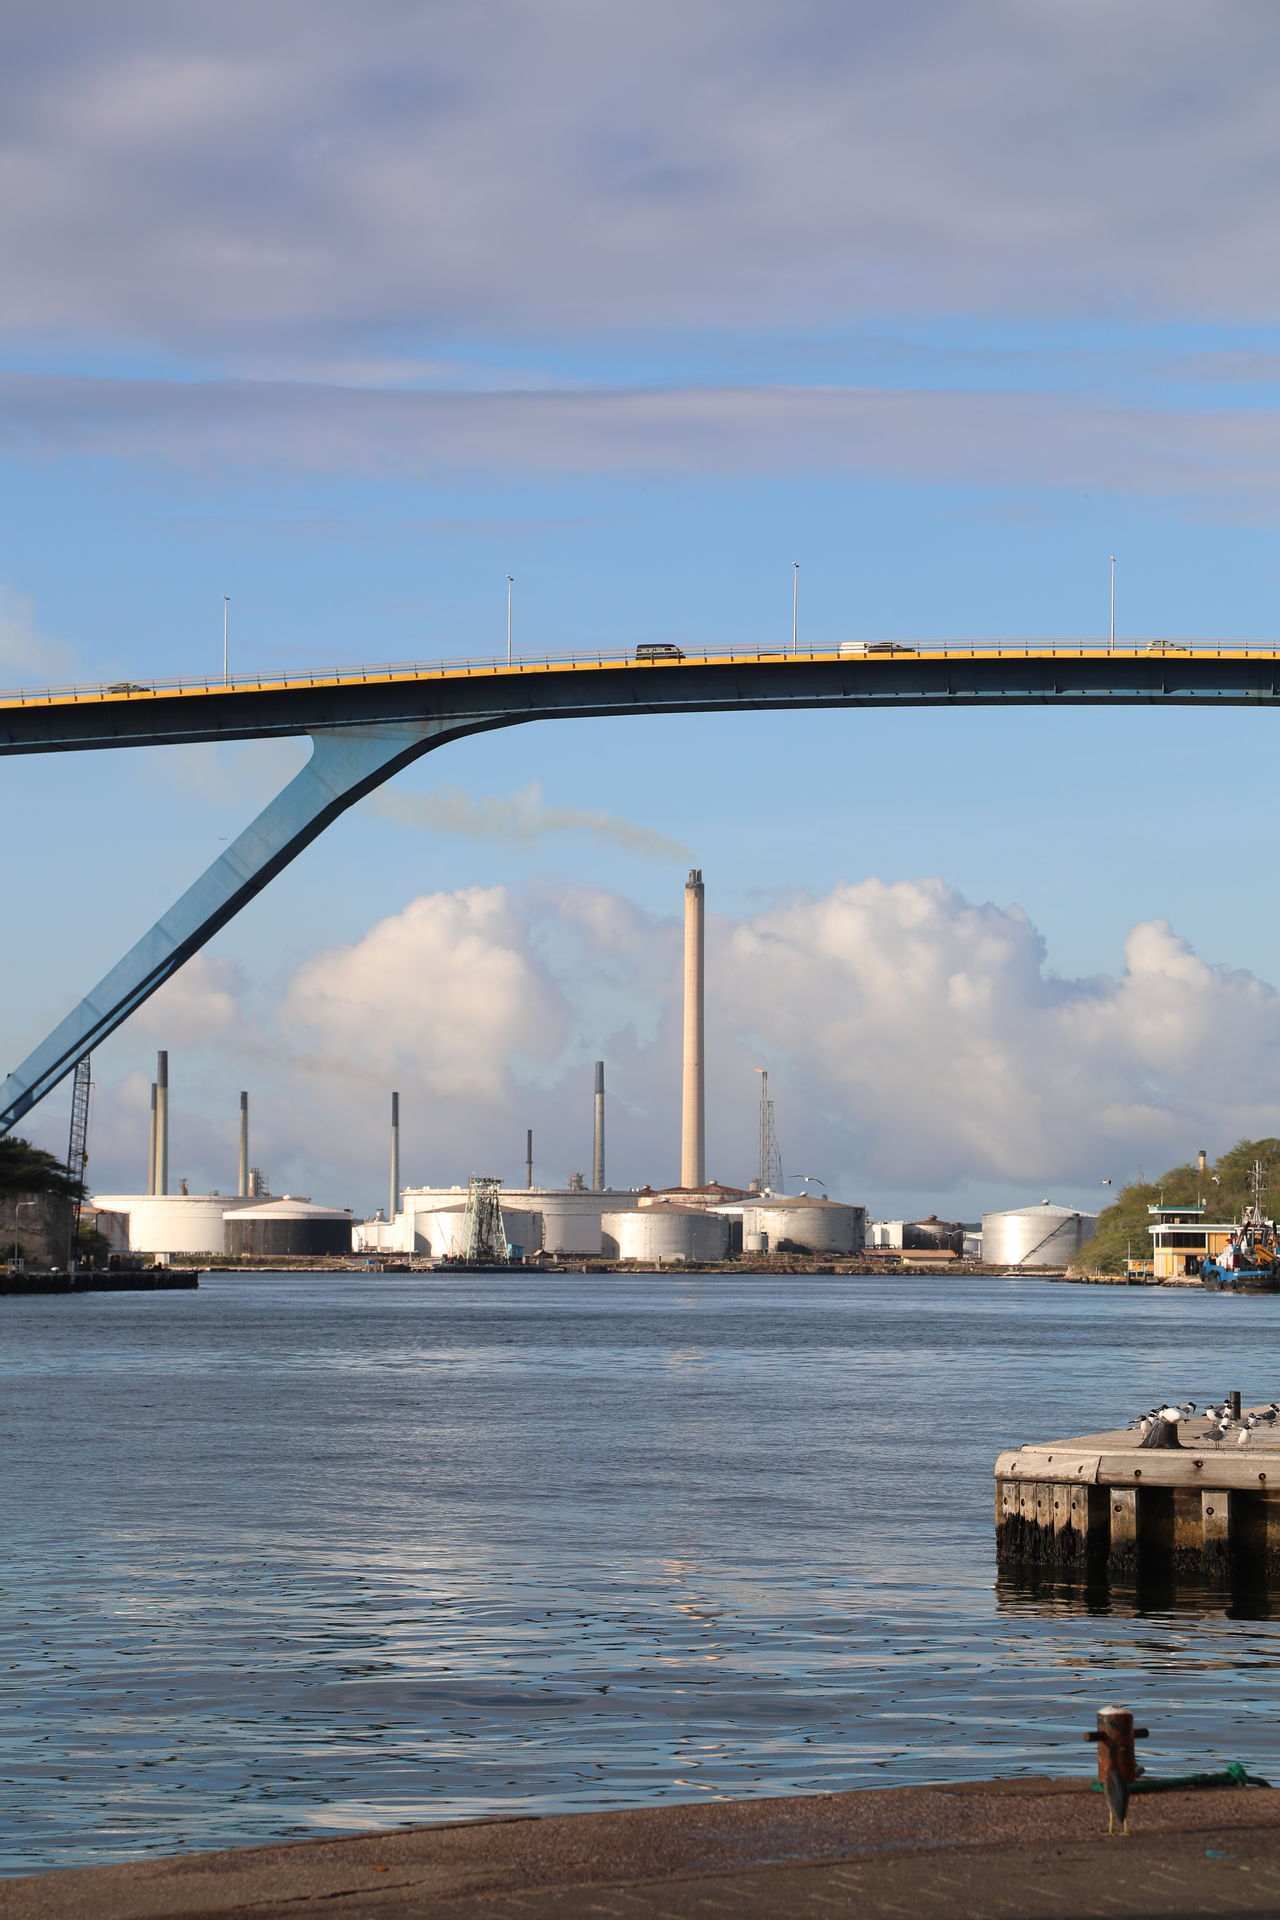 Architecture Bridge - Man Made Structure Built Structure City Cloud - Sky Connection Day No People Outdoors Refinery Sky Water Waterfront